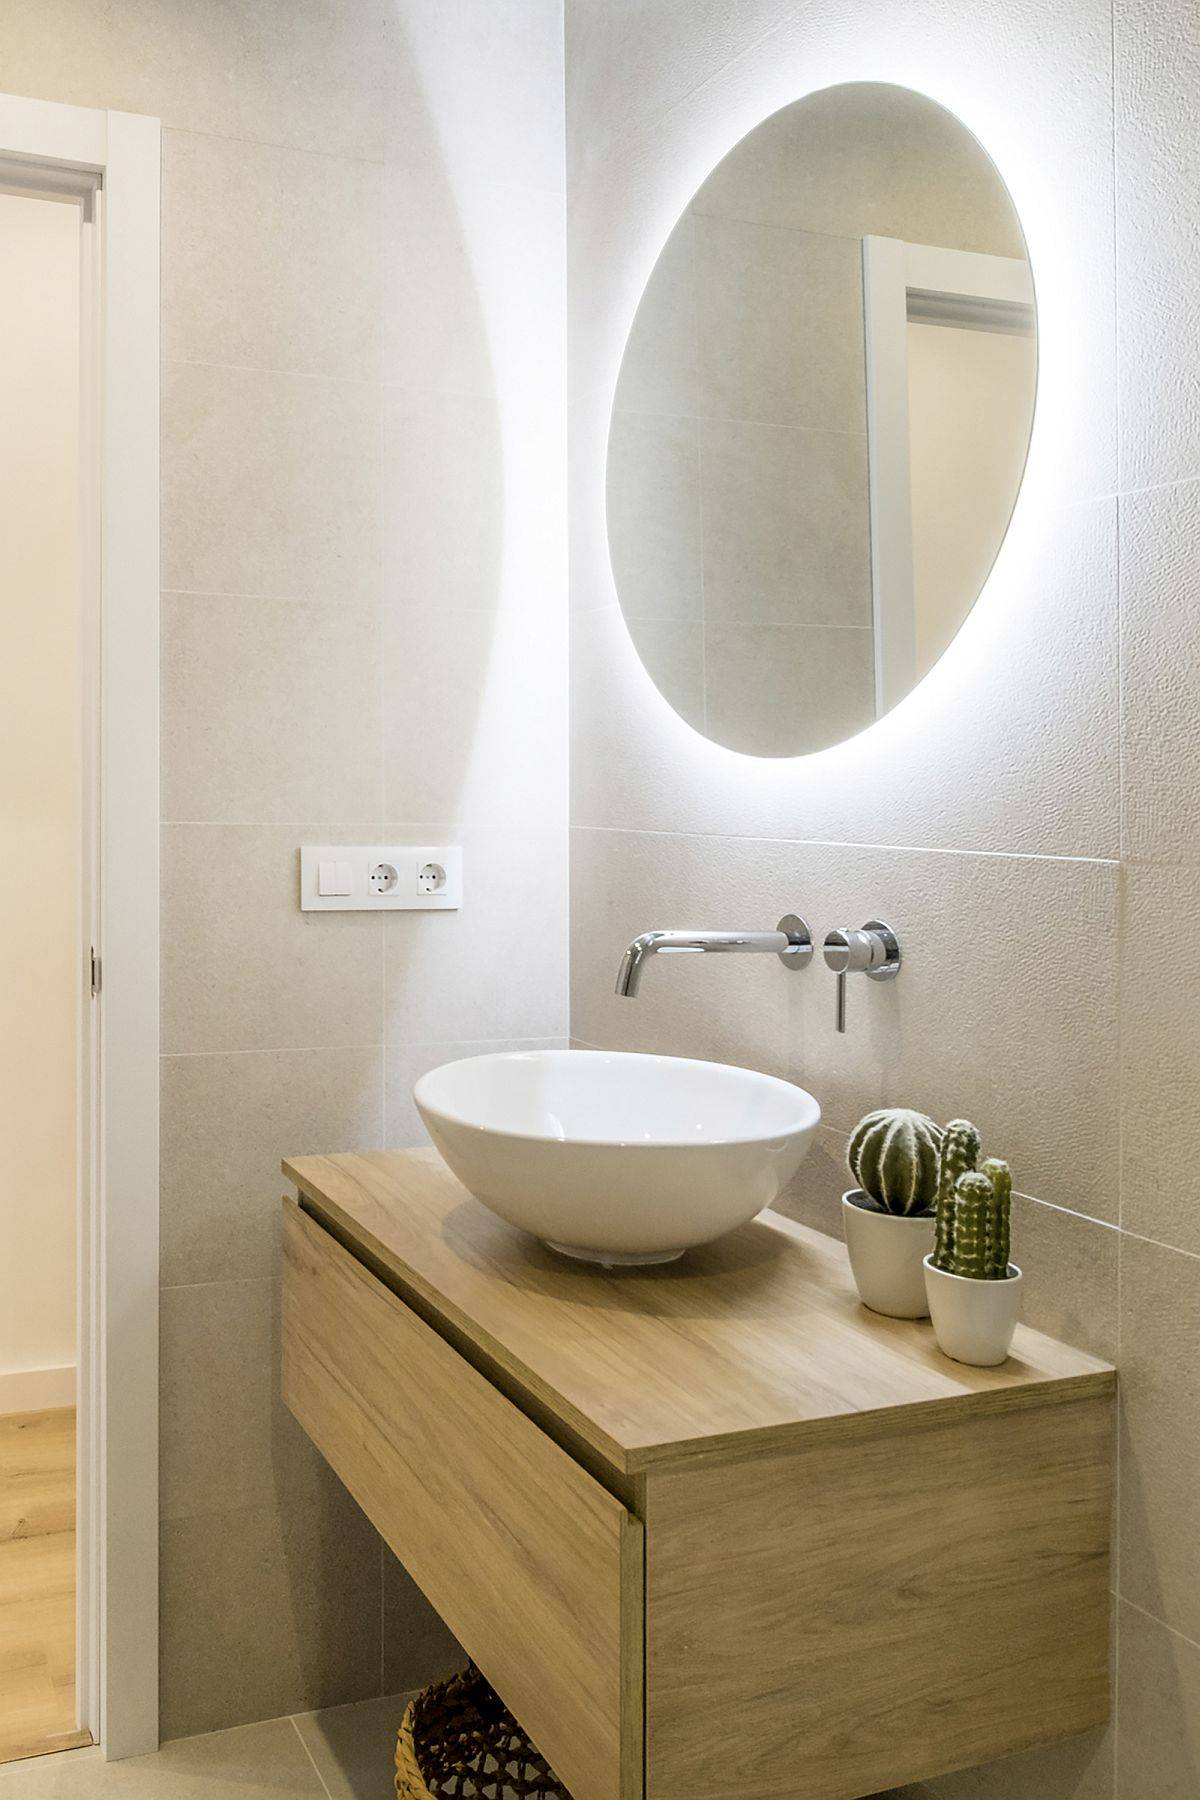 Wooden vanity in the corner for the small modern bathroom in white